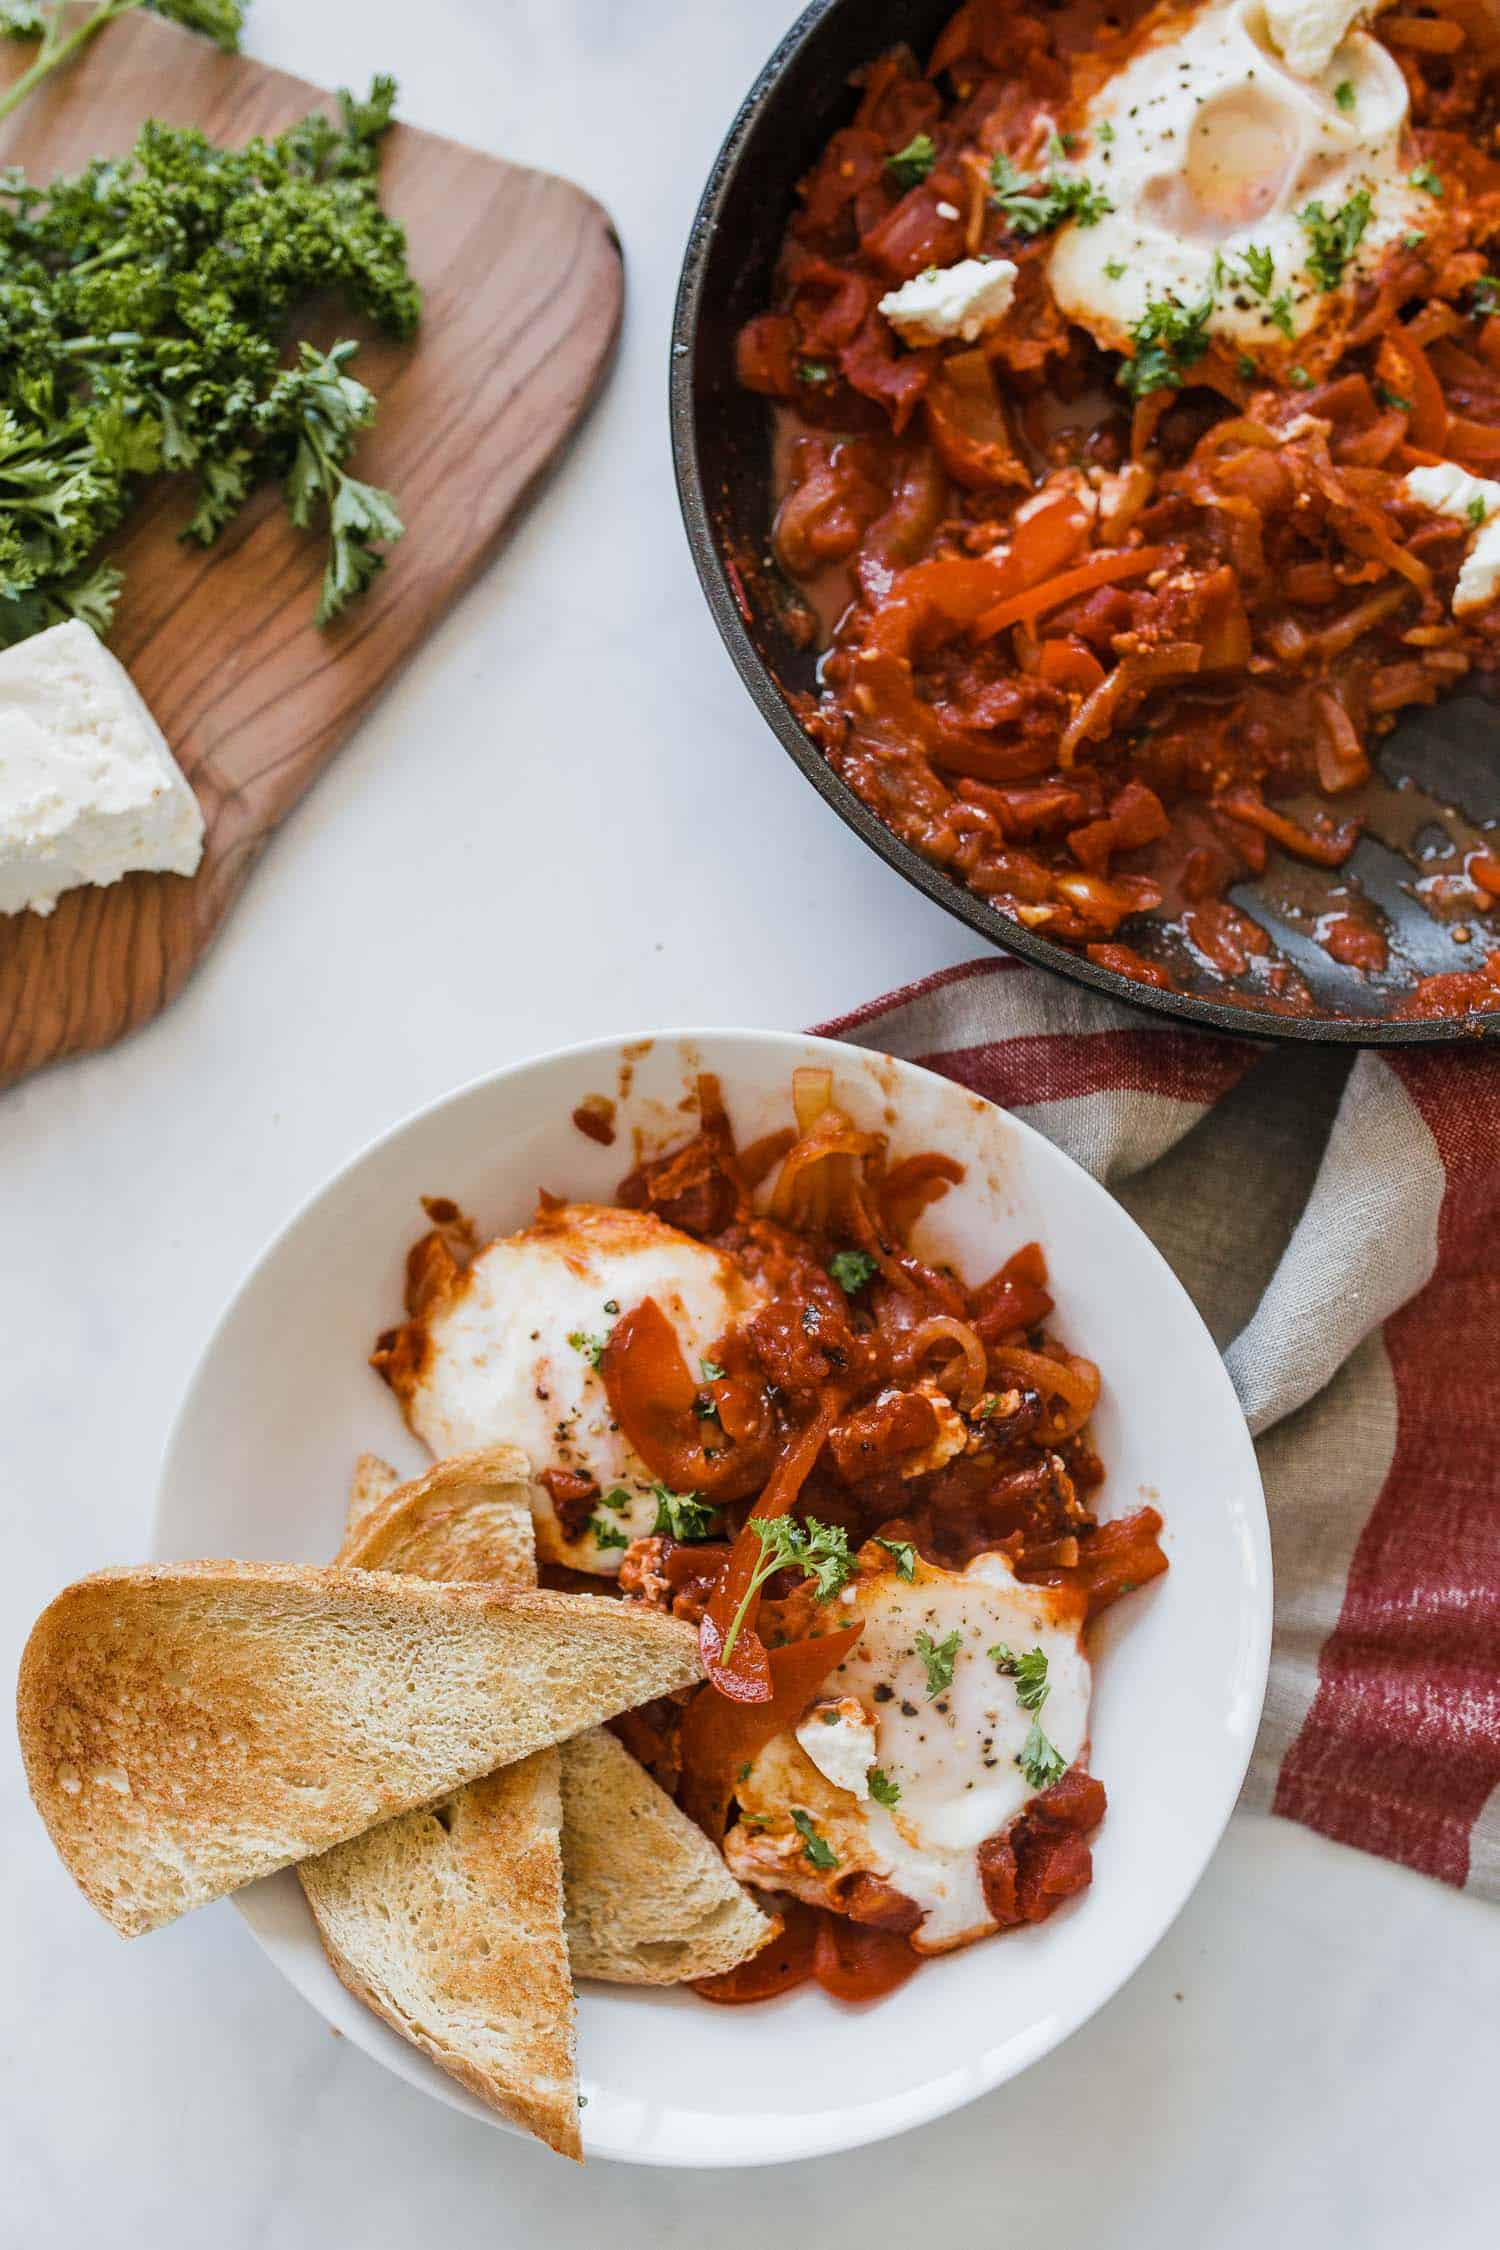 shakshuka breakfast recipe with feta